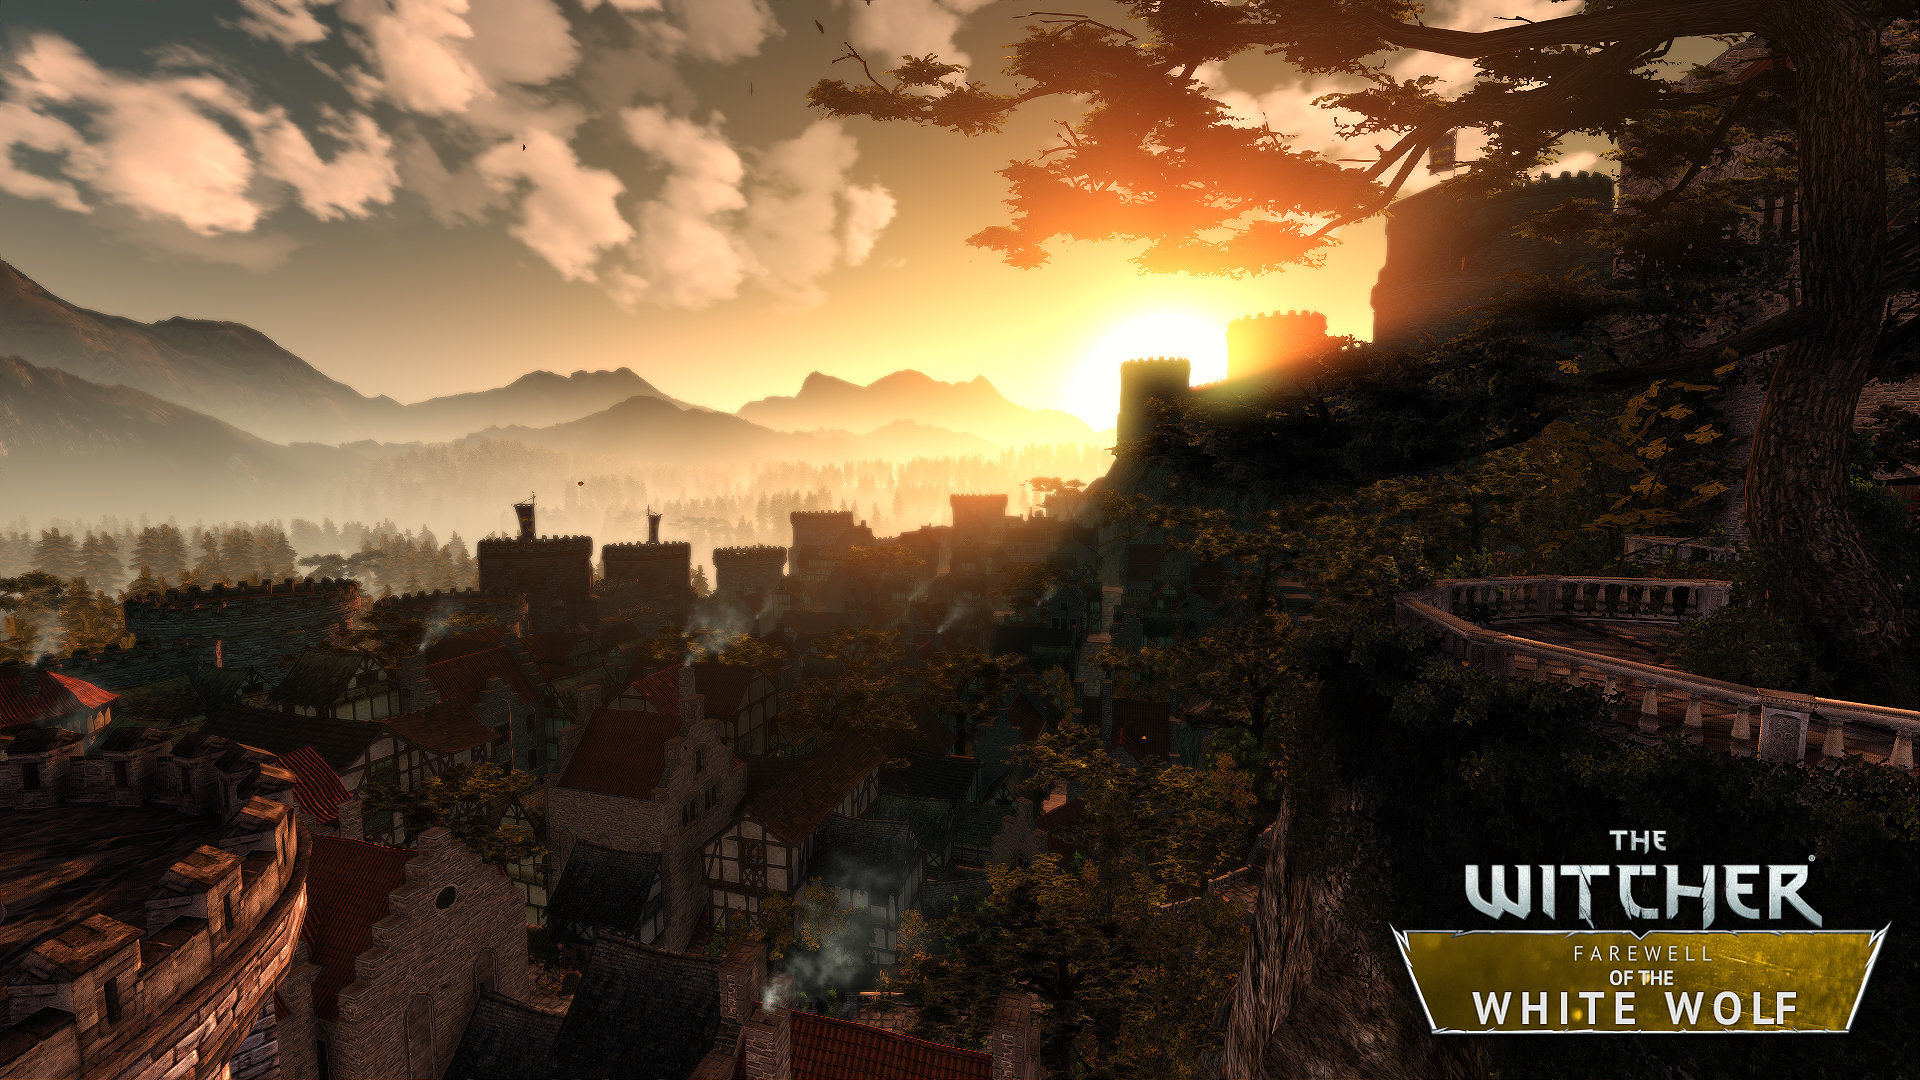 witcher-farewell-of-the-whitewolf-002